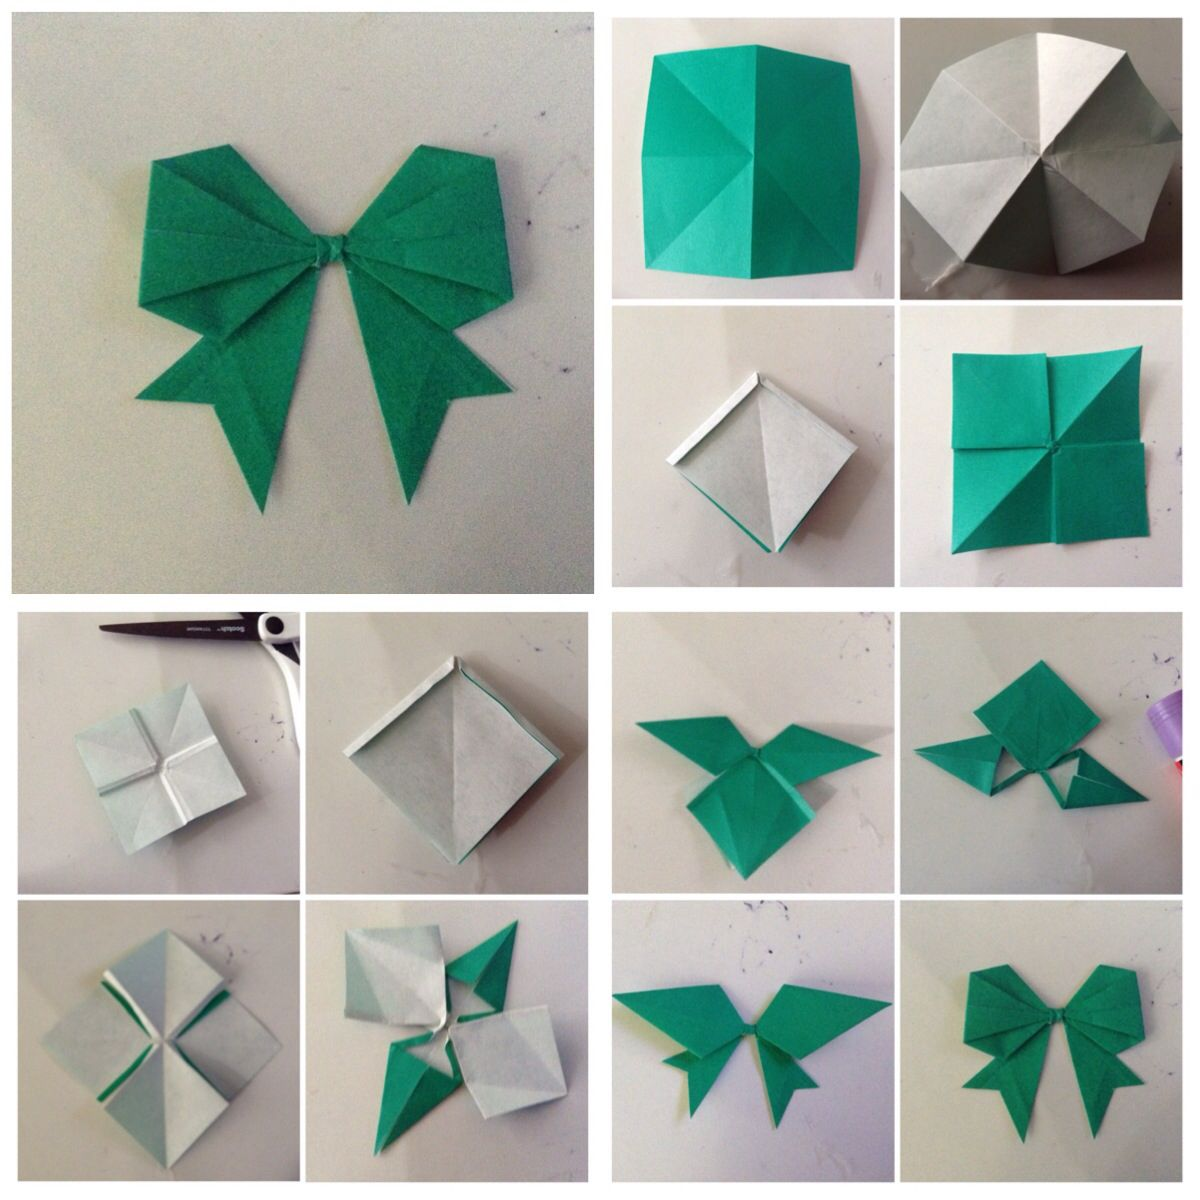 Diy Origami Bow Folding Diagram 1 Of 3 Scottish Terrier Dog Money